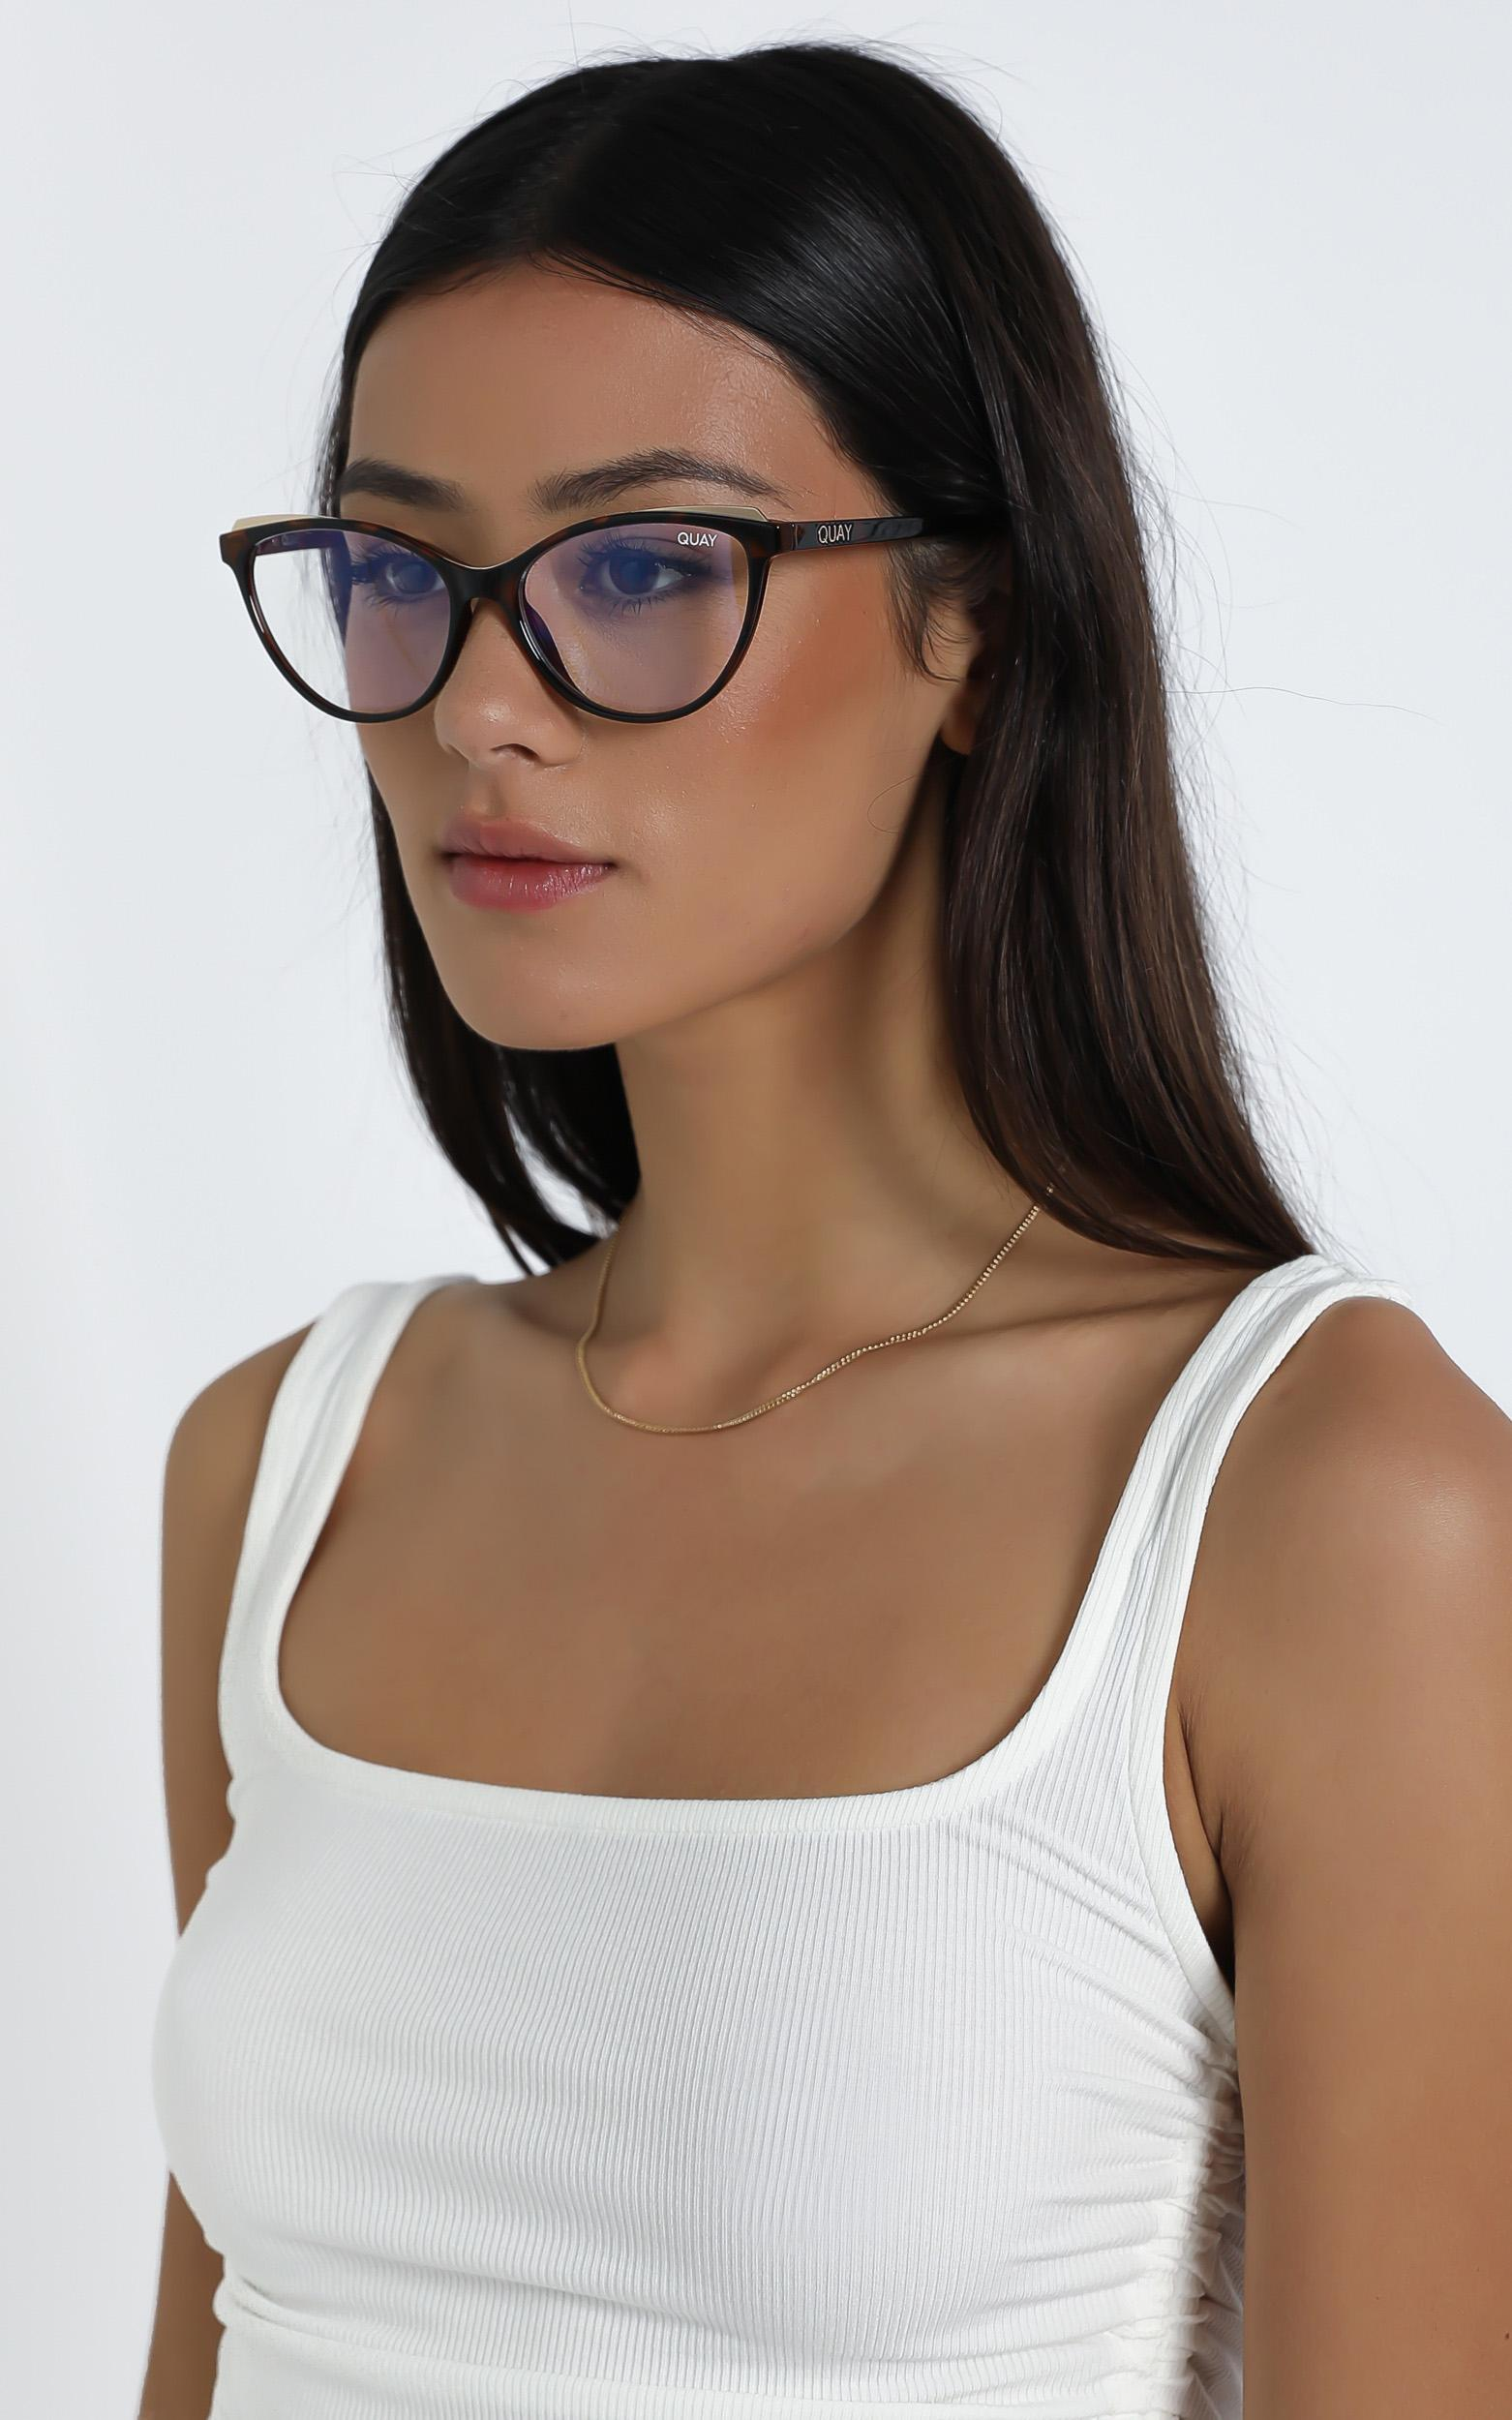 Quay - Please Advise Blue Light Glasses in Tort / Clear Blue, Brown, hi-res image number null